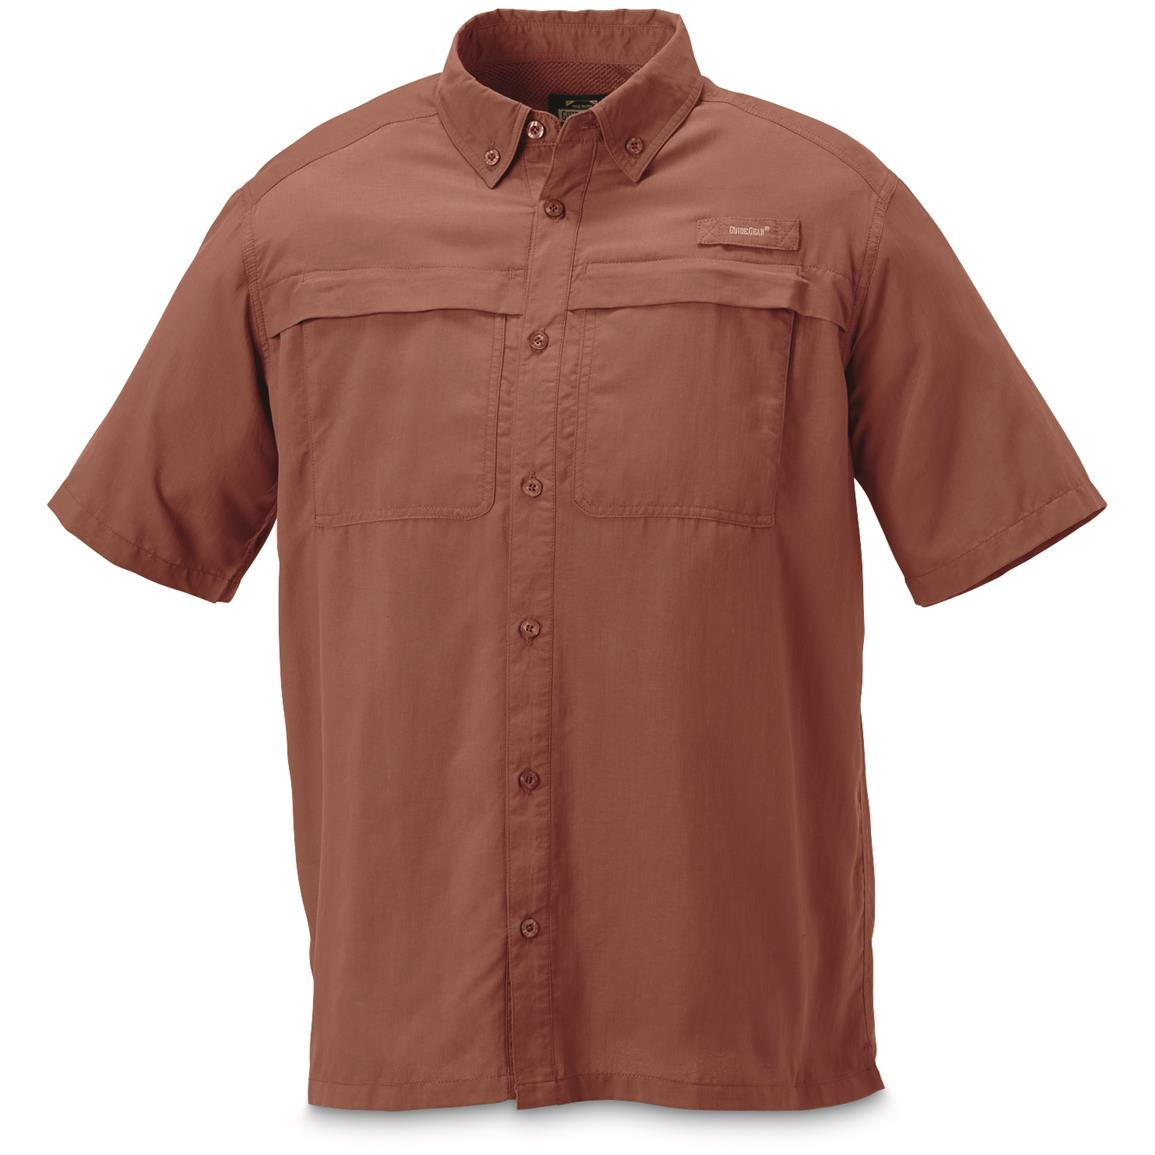 Guide Gear Men's Traverse Short Sleeve Shirt, Rust